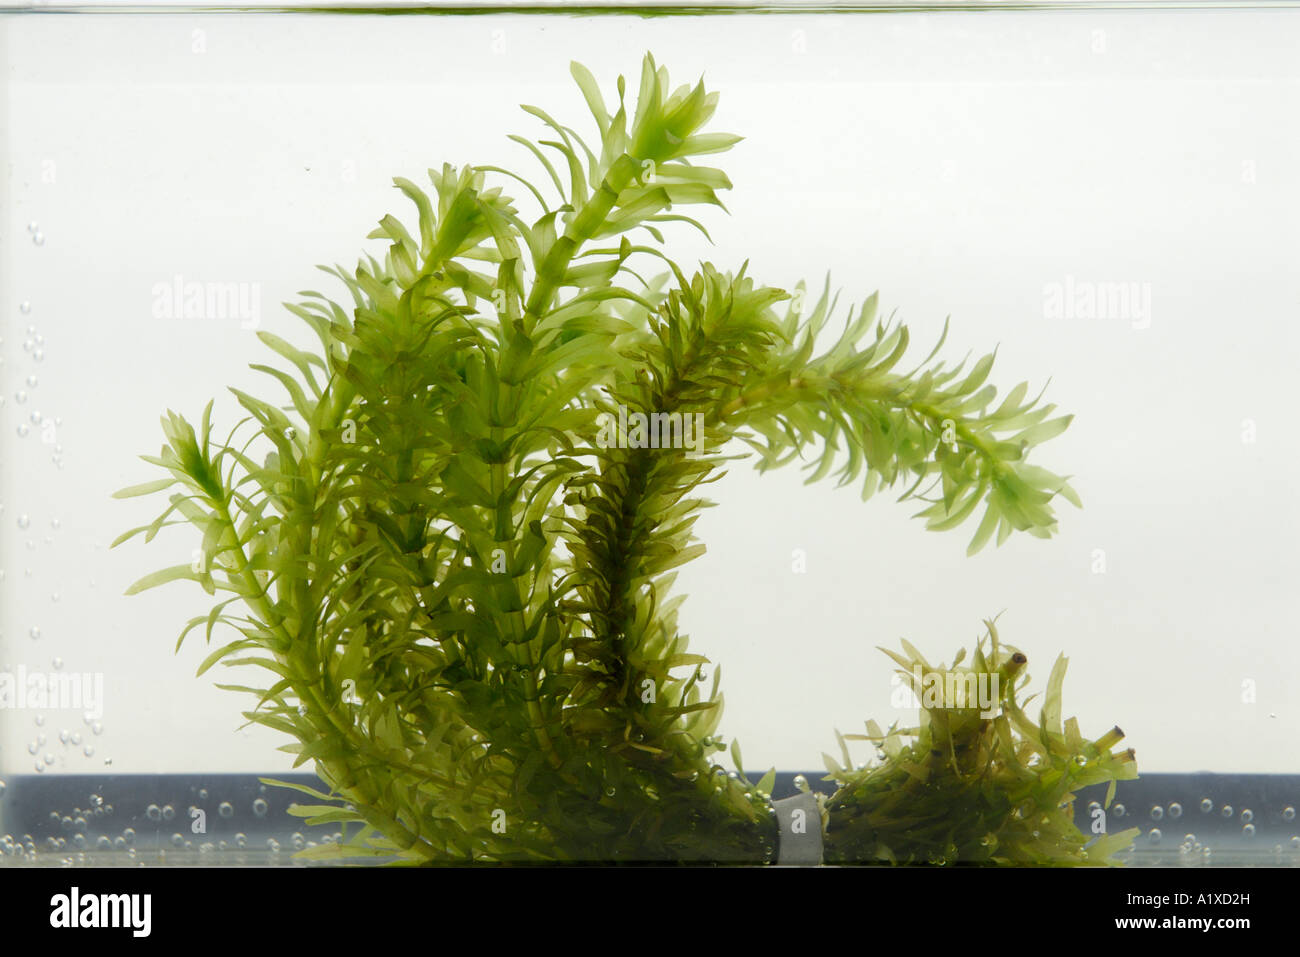 Plante aquatique, Elodea Photo Stock